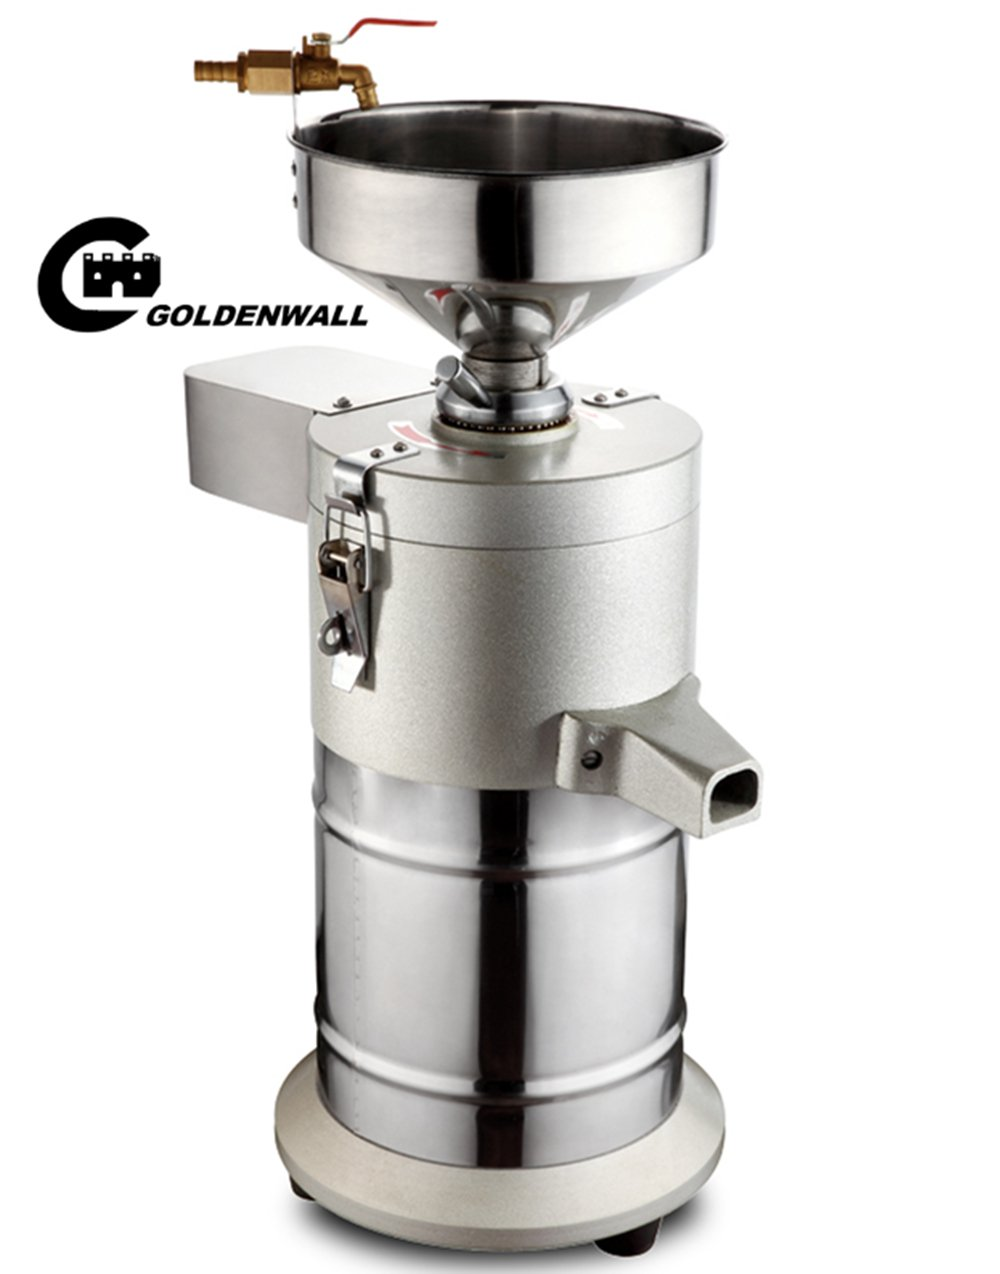 Commercial aluminum alloy Healthy Nutrition Soymilk Maker Commercial large Soymilk Maker Soybean Milk machine Electric fiberizer Automatic Soya Milk and Dregs separater Splitter 80kg/h by CGOLDENWALL